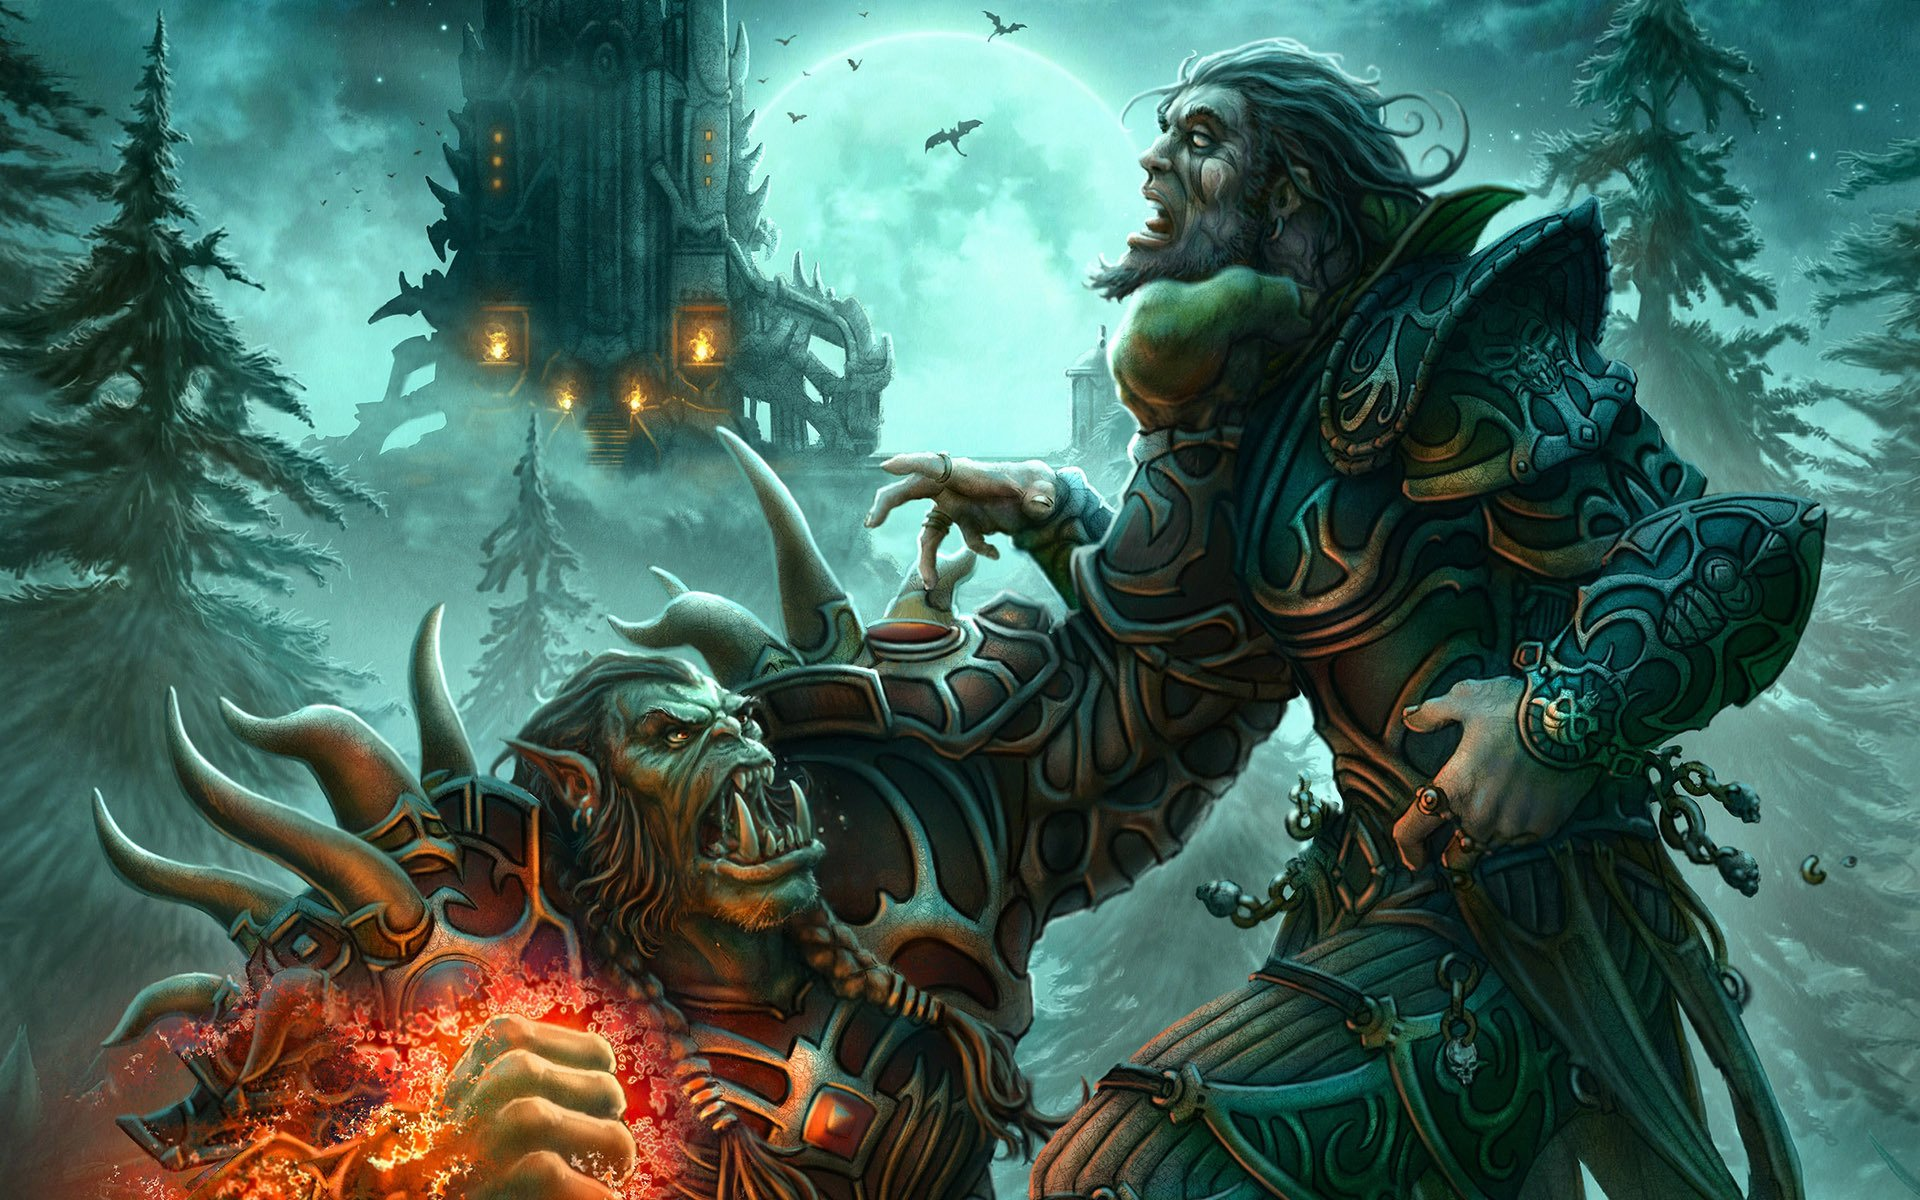 World of Warcraft Orc wallpapers World of Warcraft Orc 1920x1200